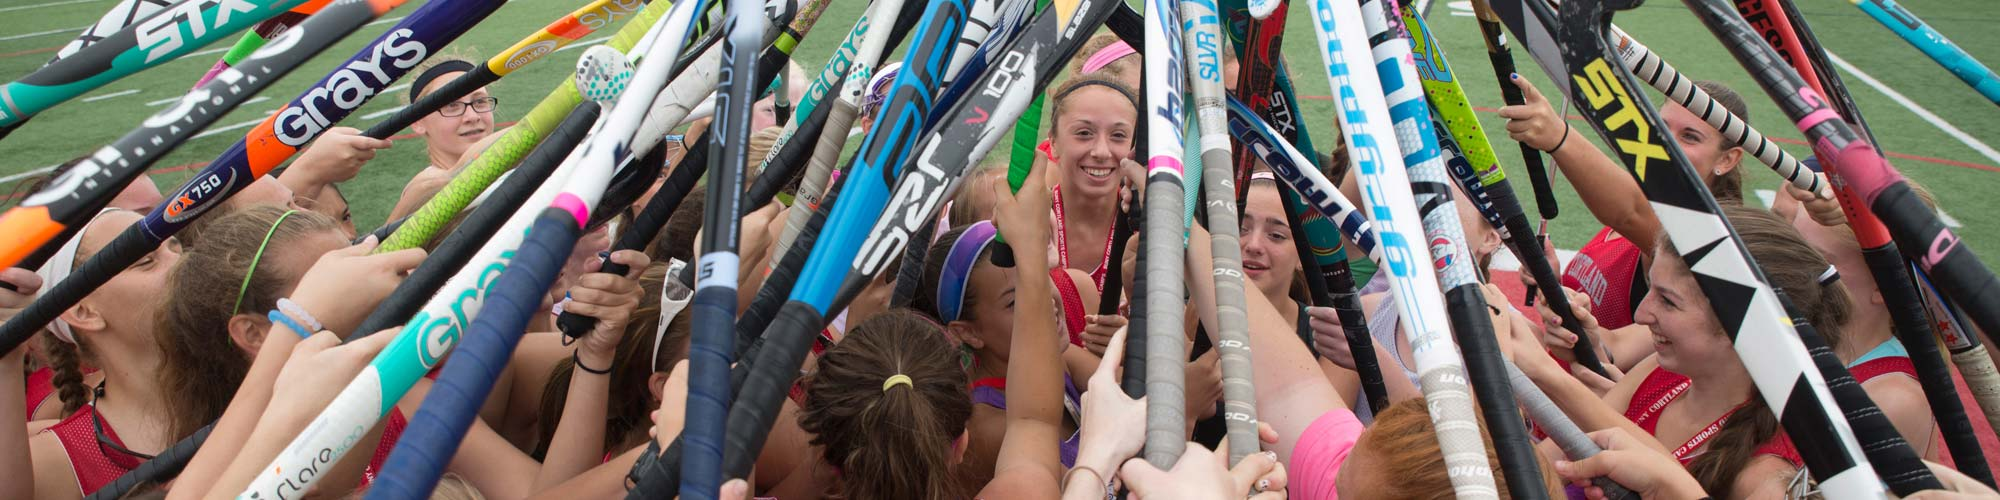 sport camp participants hold up their field hockey sticks